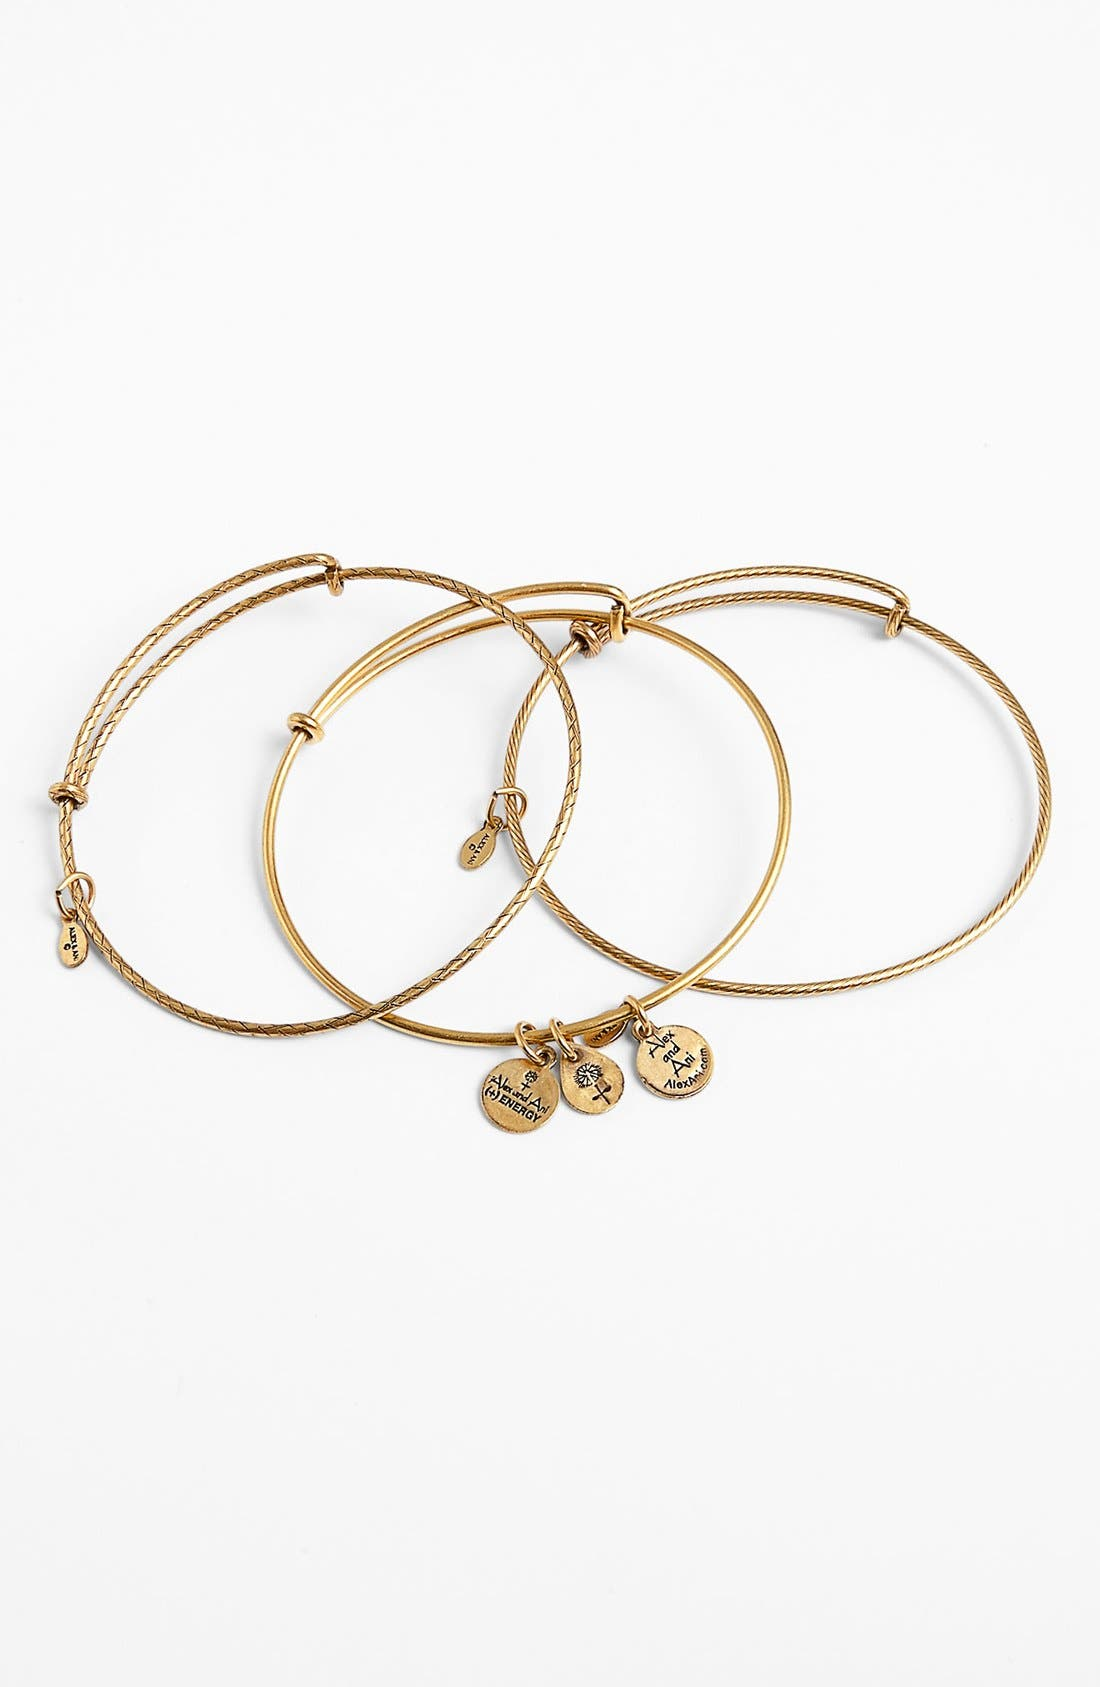 Main Image - Alex and Ani 'Energy' Adjustable Wire Bangles (Set of 3)